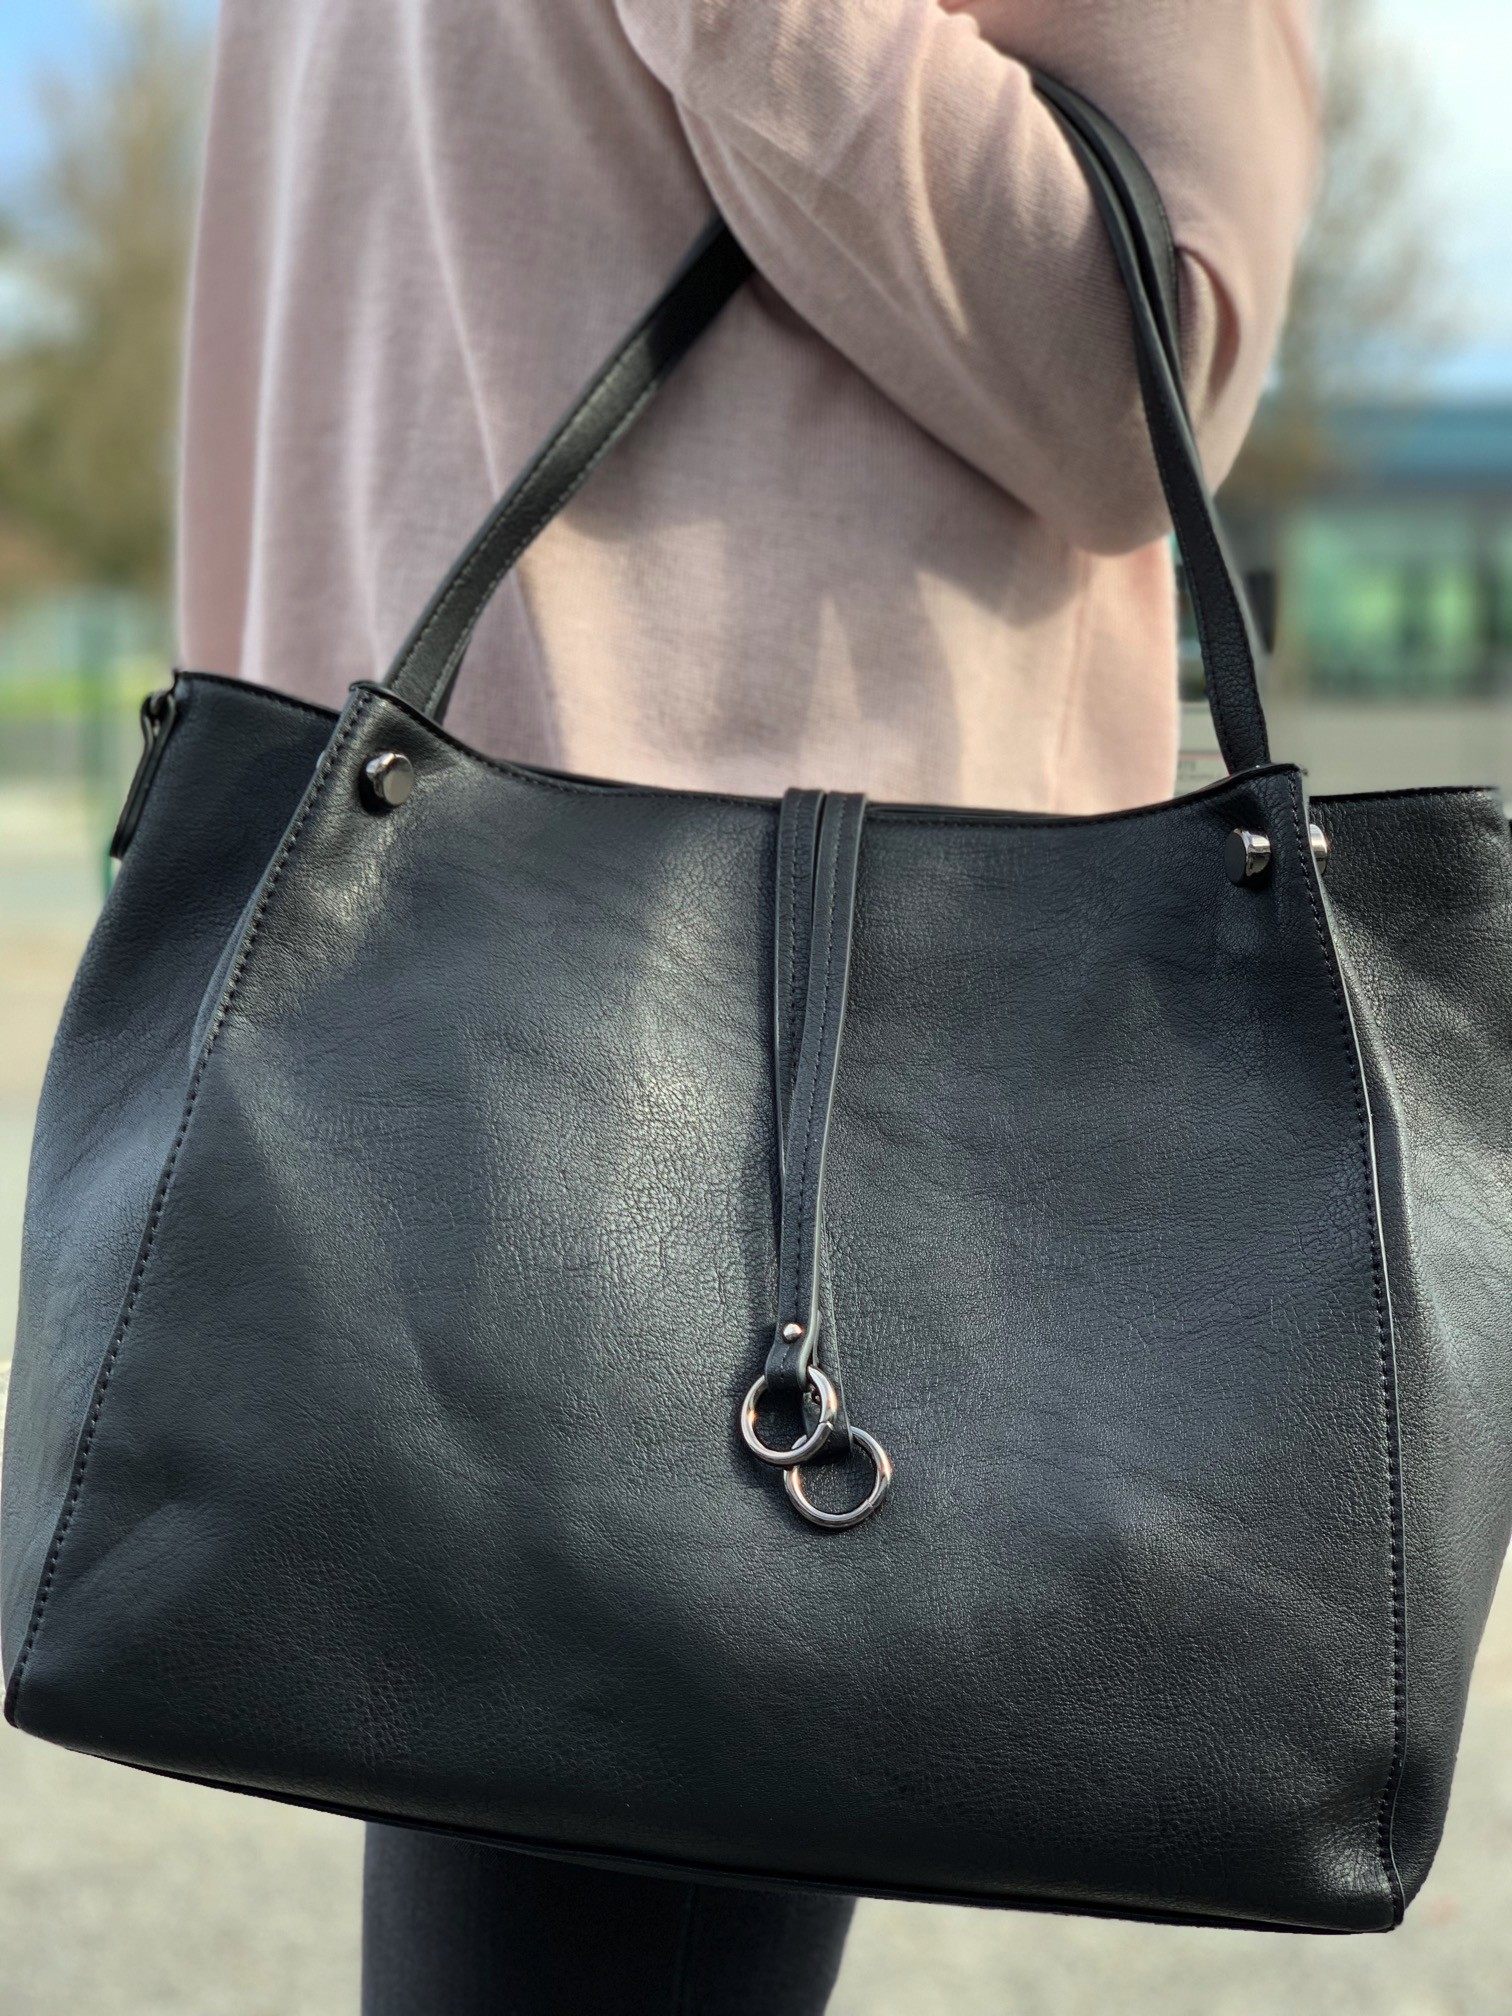 b1f33deead5b Shoulder bag - Large size plain color leather look with two straps and ...